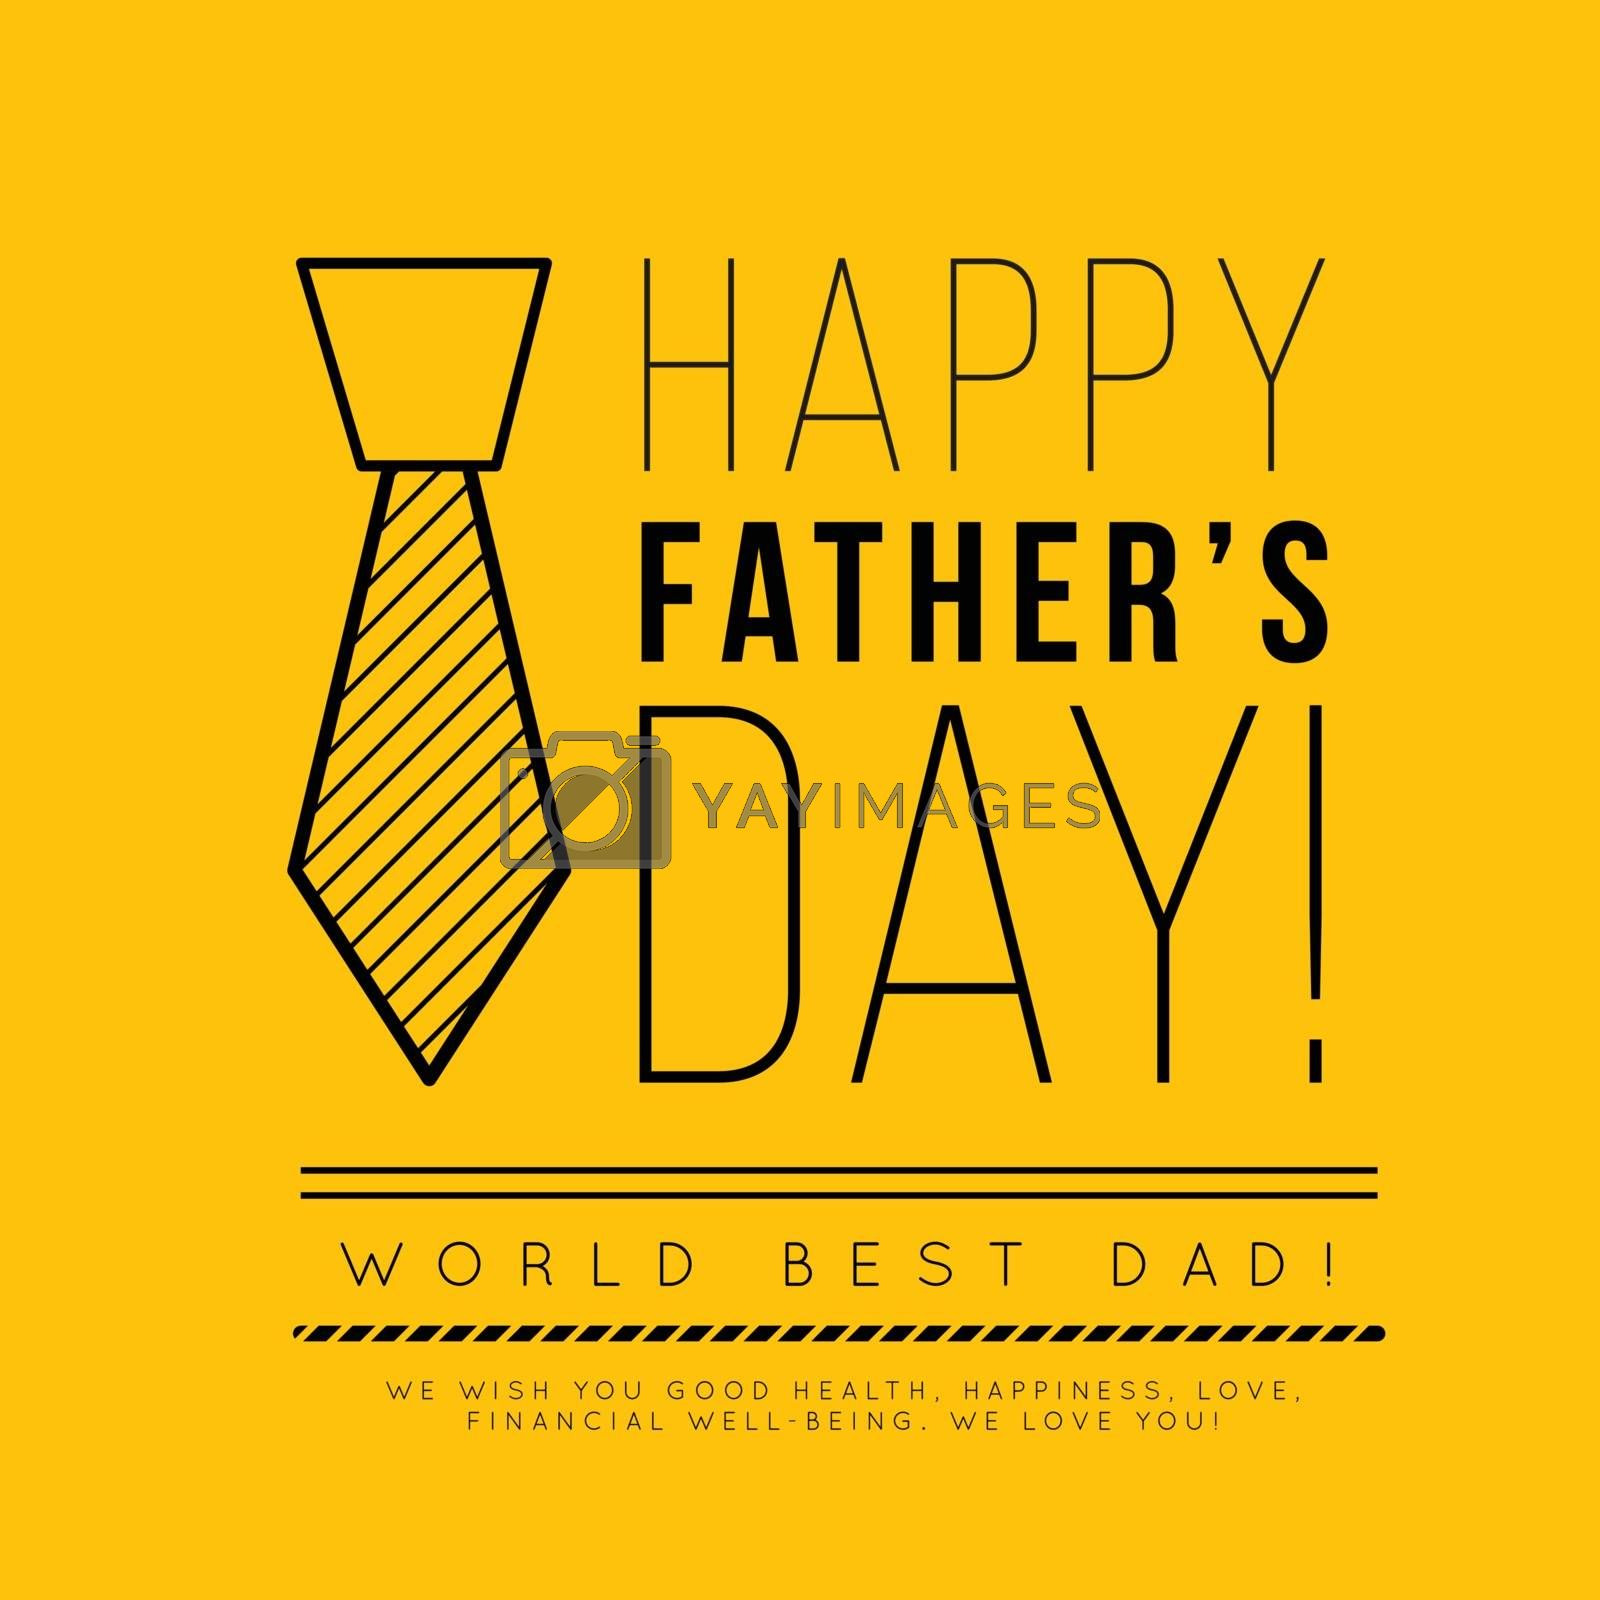 Happy father's day. Congratulation in the fashionable style of minimalism with geometric shapes on a yellow background